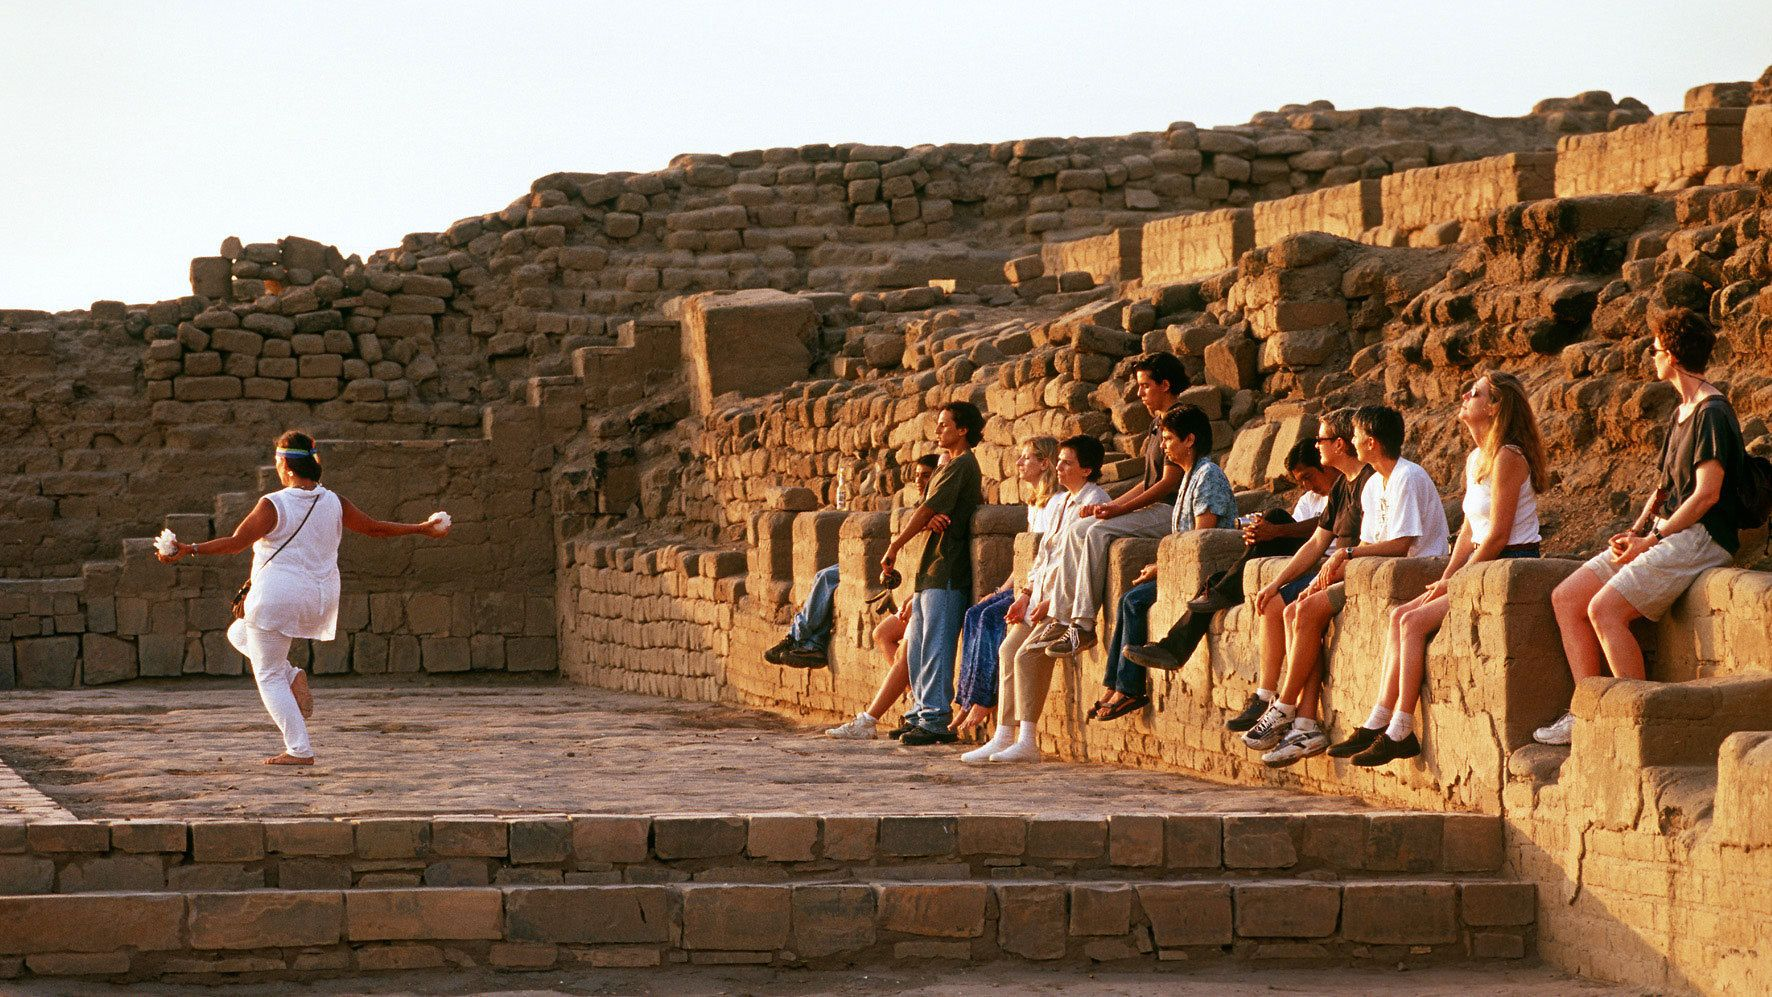 Group spectating traditional rituals at the Pachacamac ruins in Lima